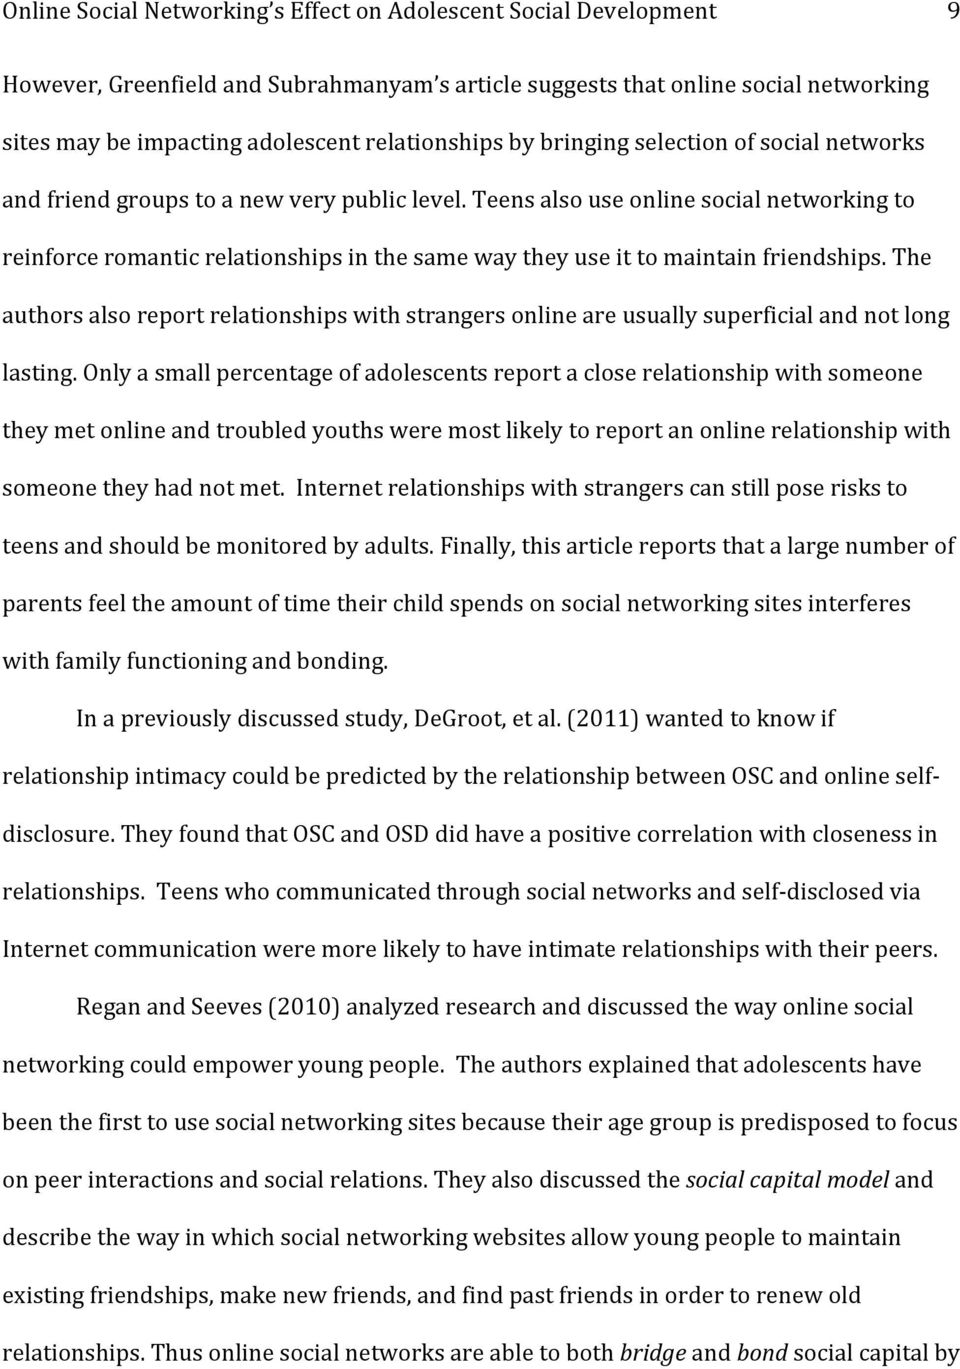 The authors also report relationships with strangers online are usually superficial and not long lasting.